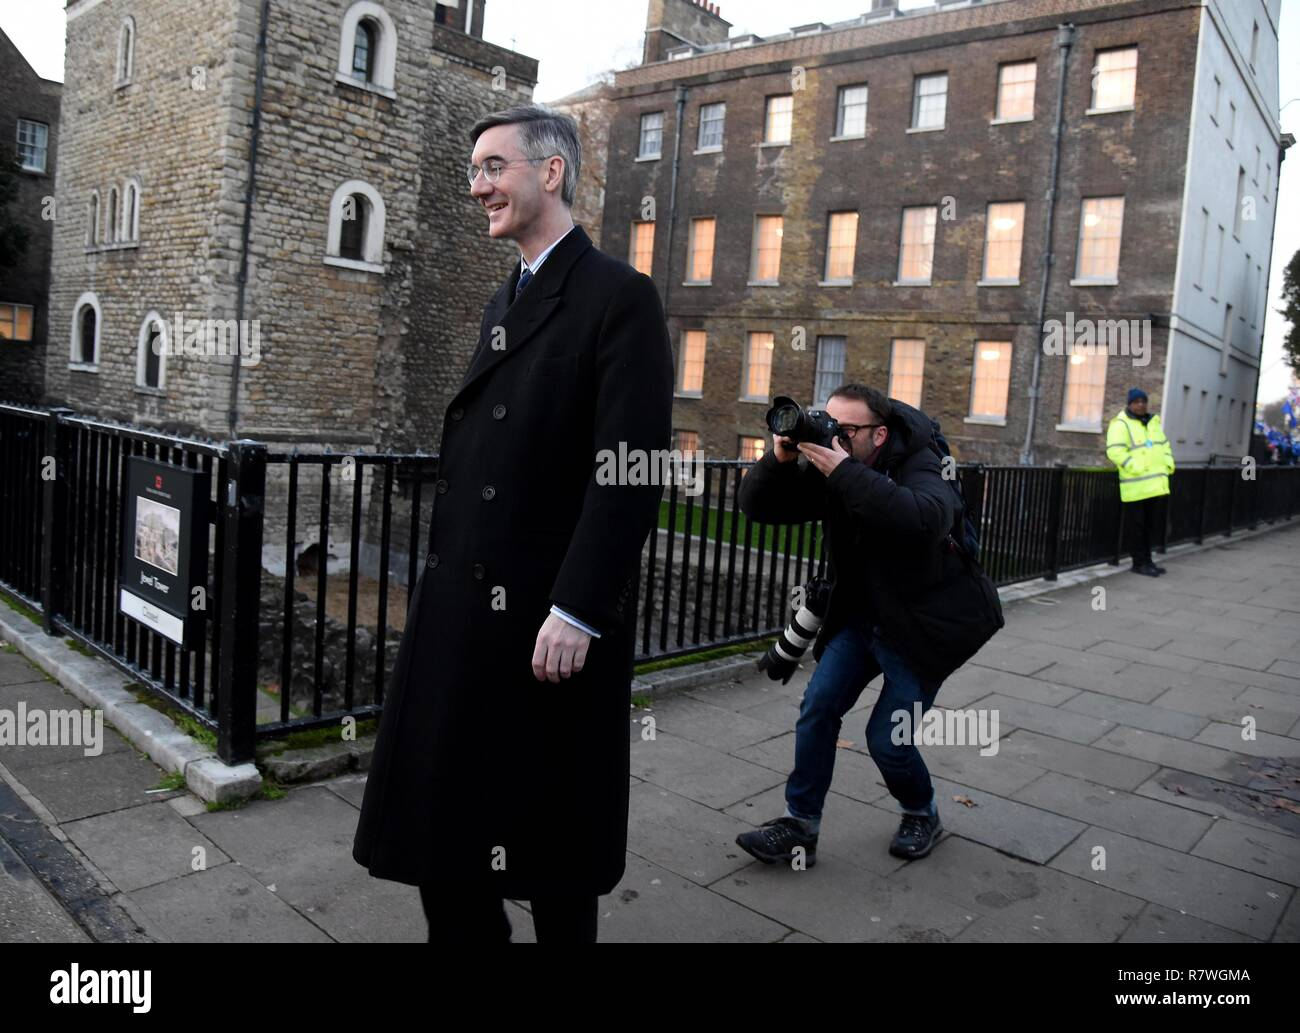 Jacob Rees-Mogg MP, Westminster, London Credit: Finnbarr Webster/Alamy Live News - Stock Image